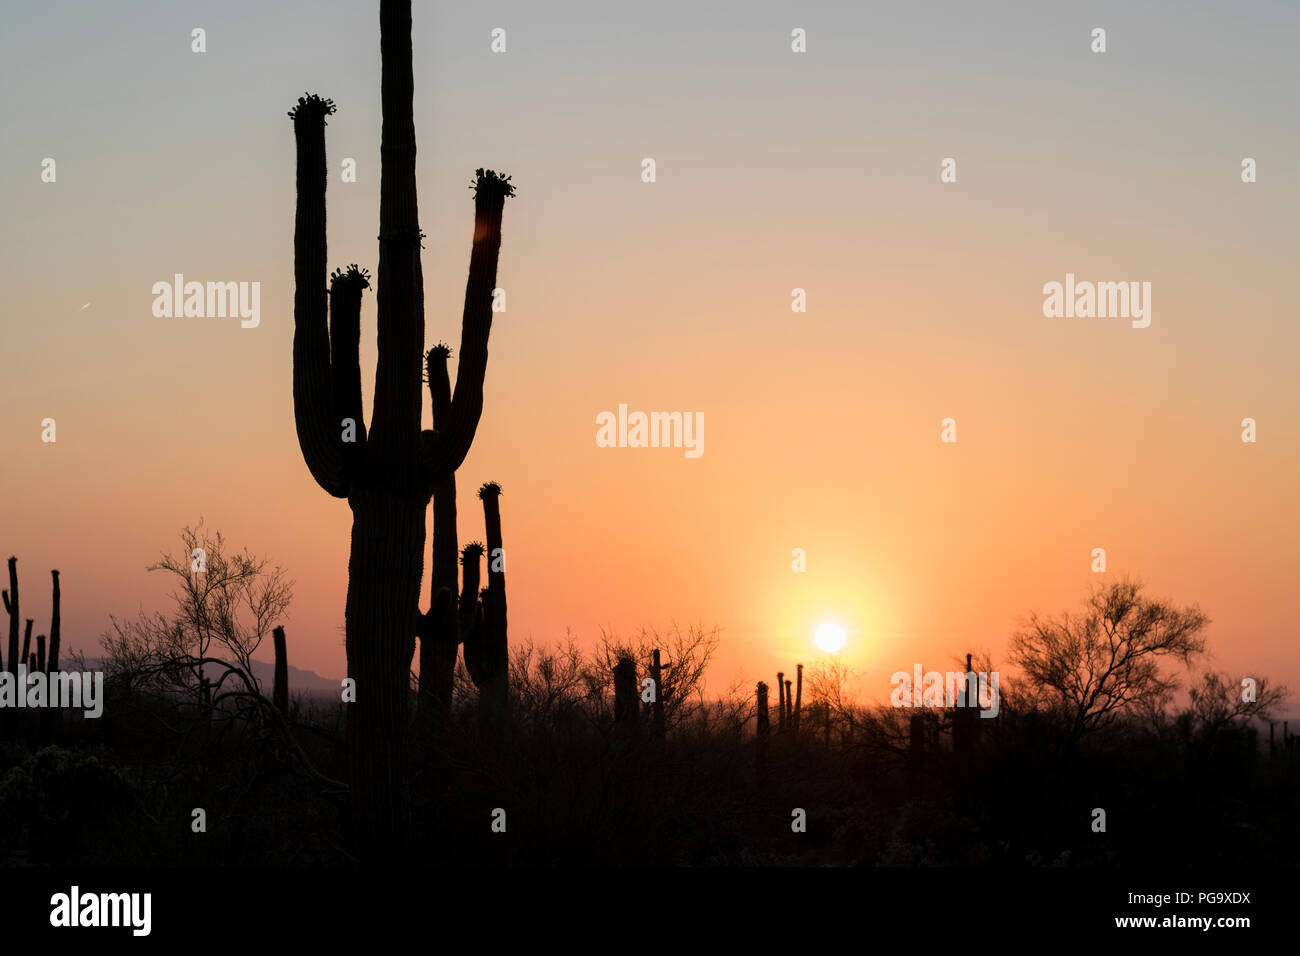 Desert Sunset in the barren Arizona Landscape with silhouette cactus. Silence and solace in the brutal and harsh desert heat. - Stock Image